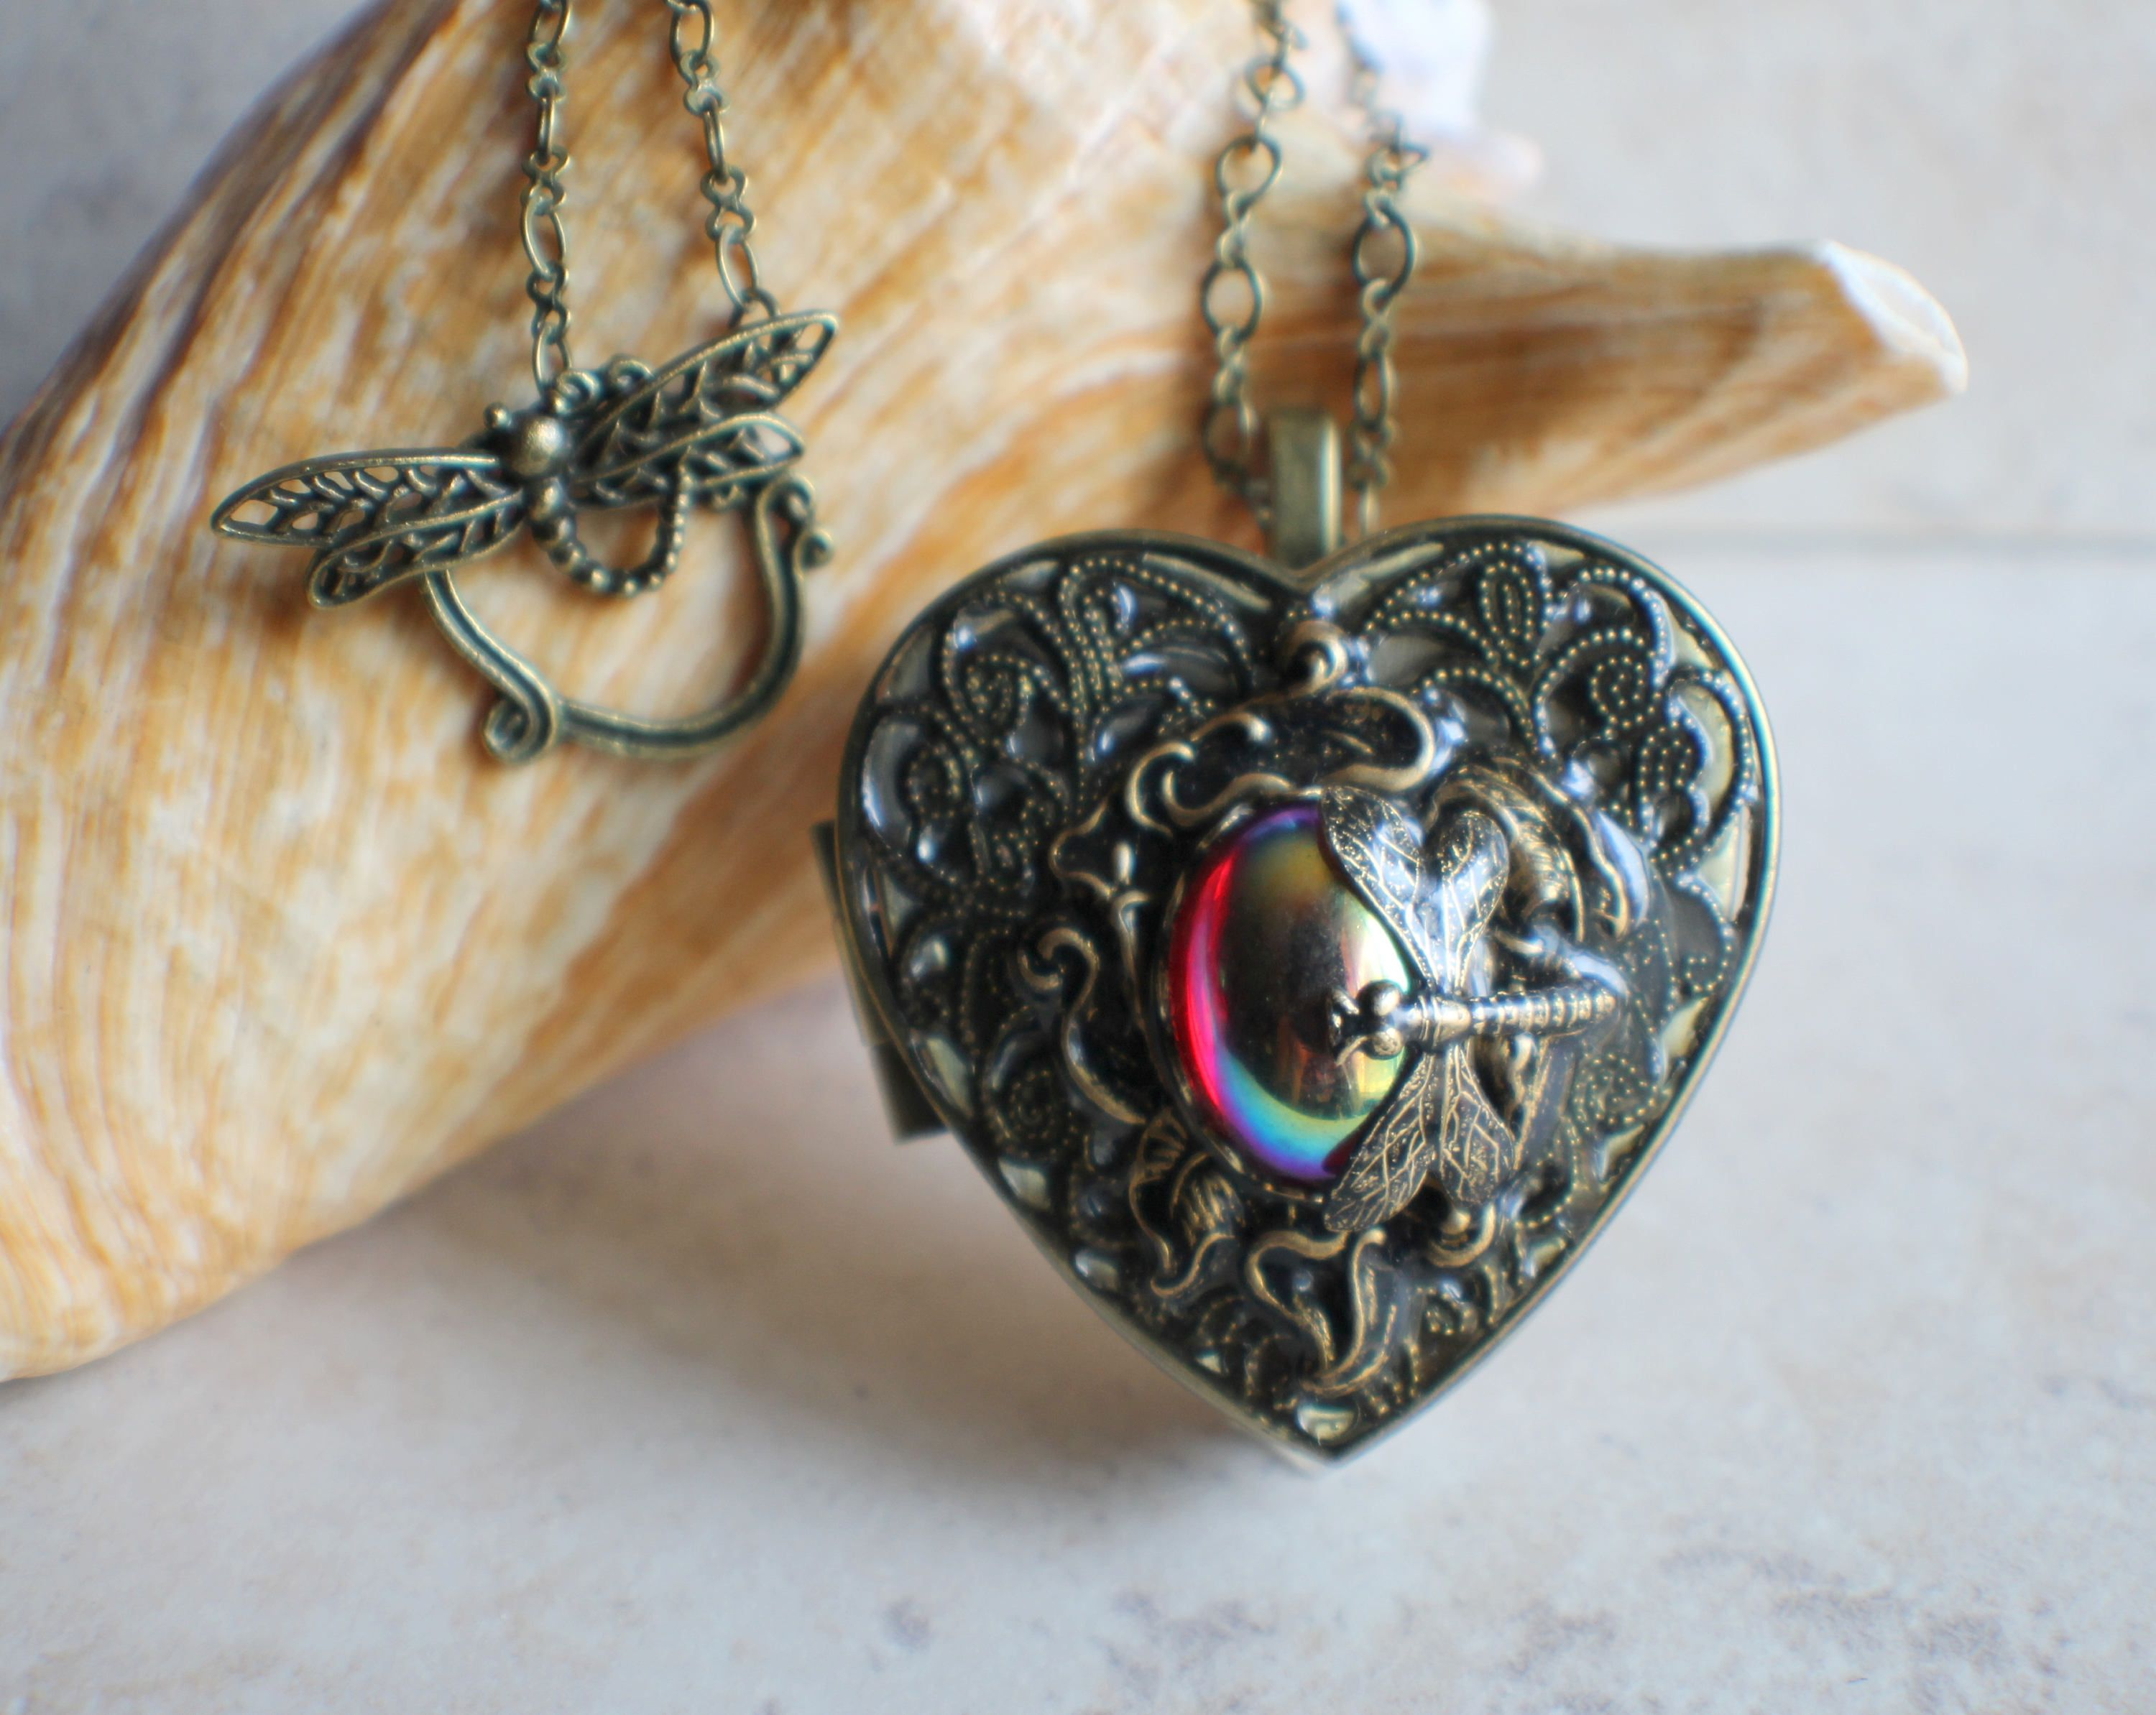 Dragonfly music box locket heart music box pendant music box dragonfly music box locket heart music box pendant music box jewelry musical photo aloadofball